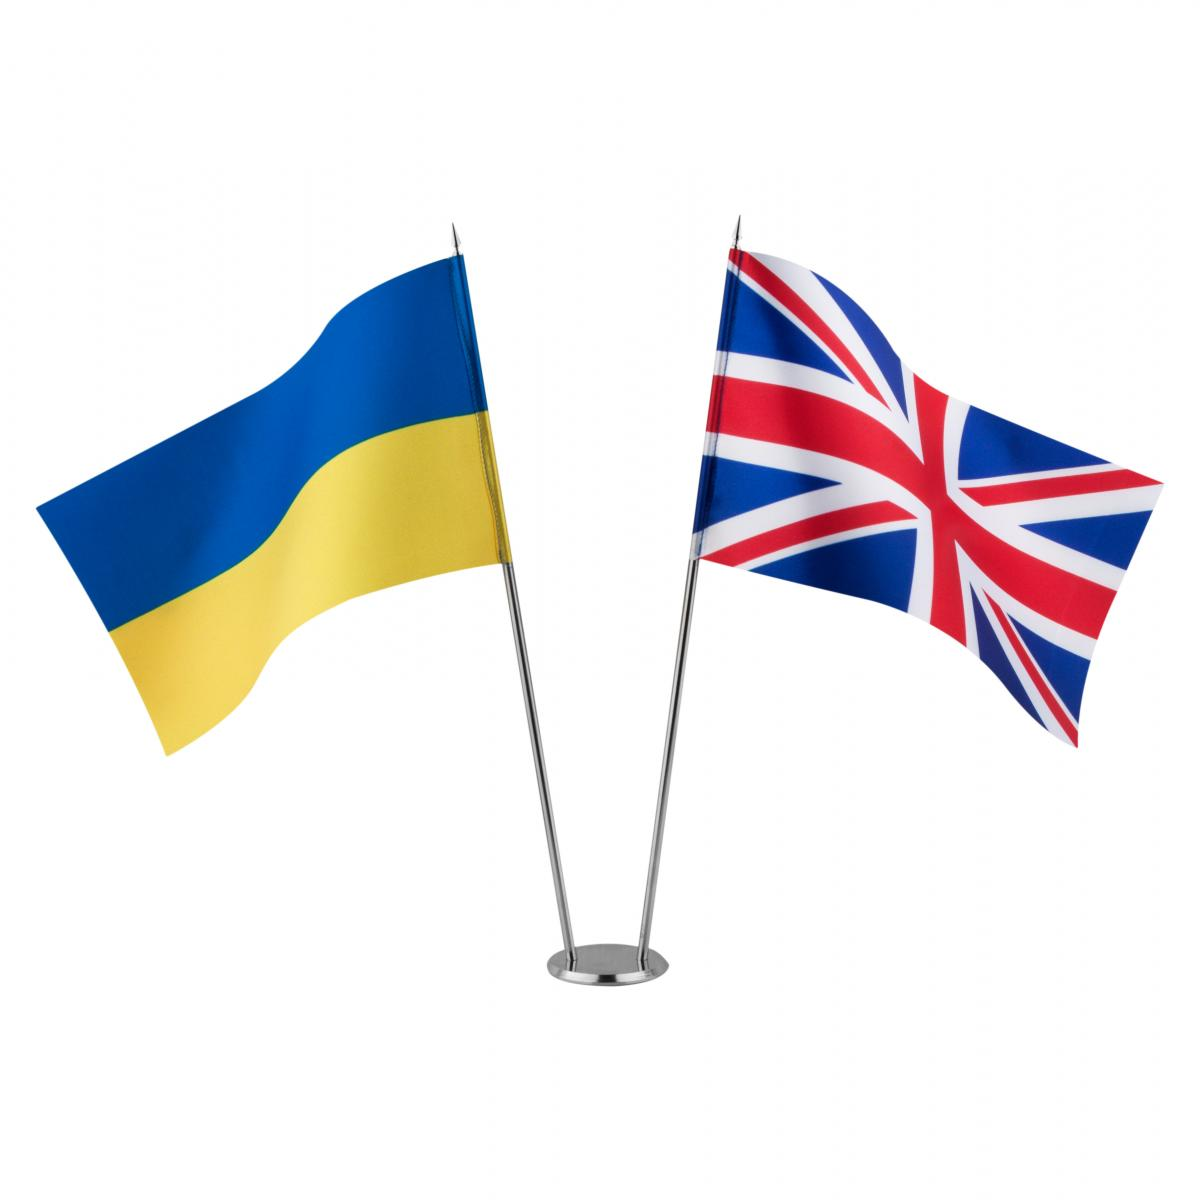 Flags of Ukraine and Great Britain on the stand